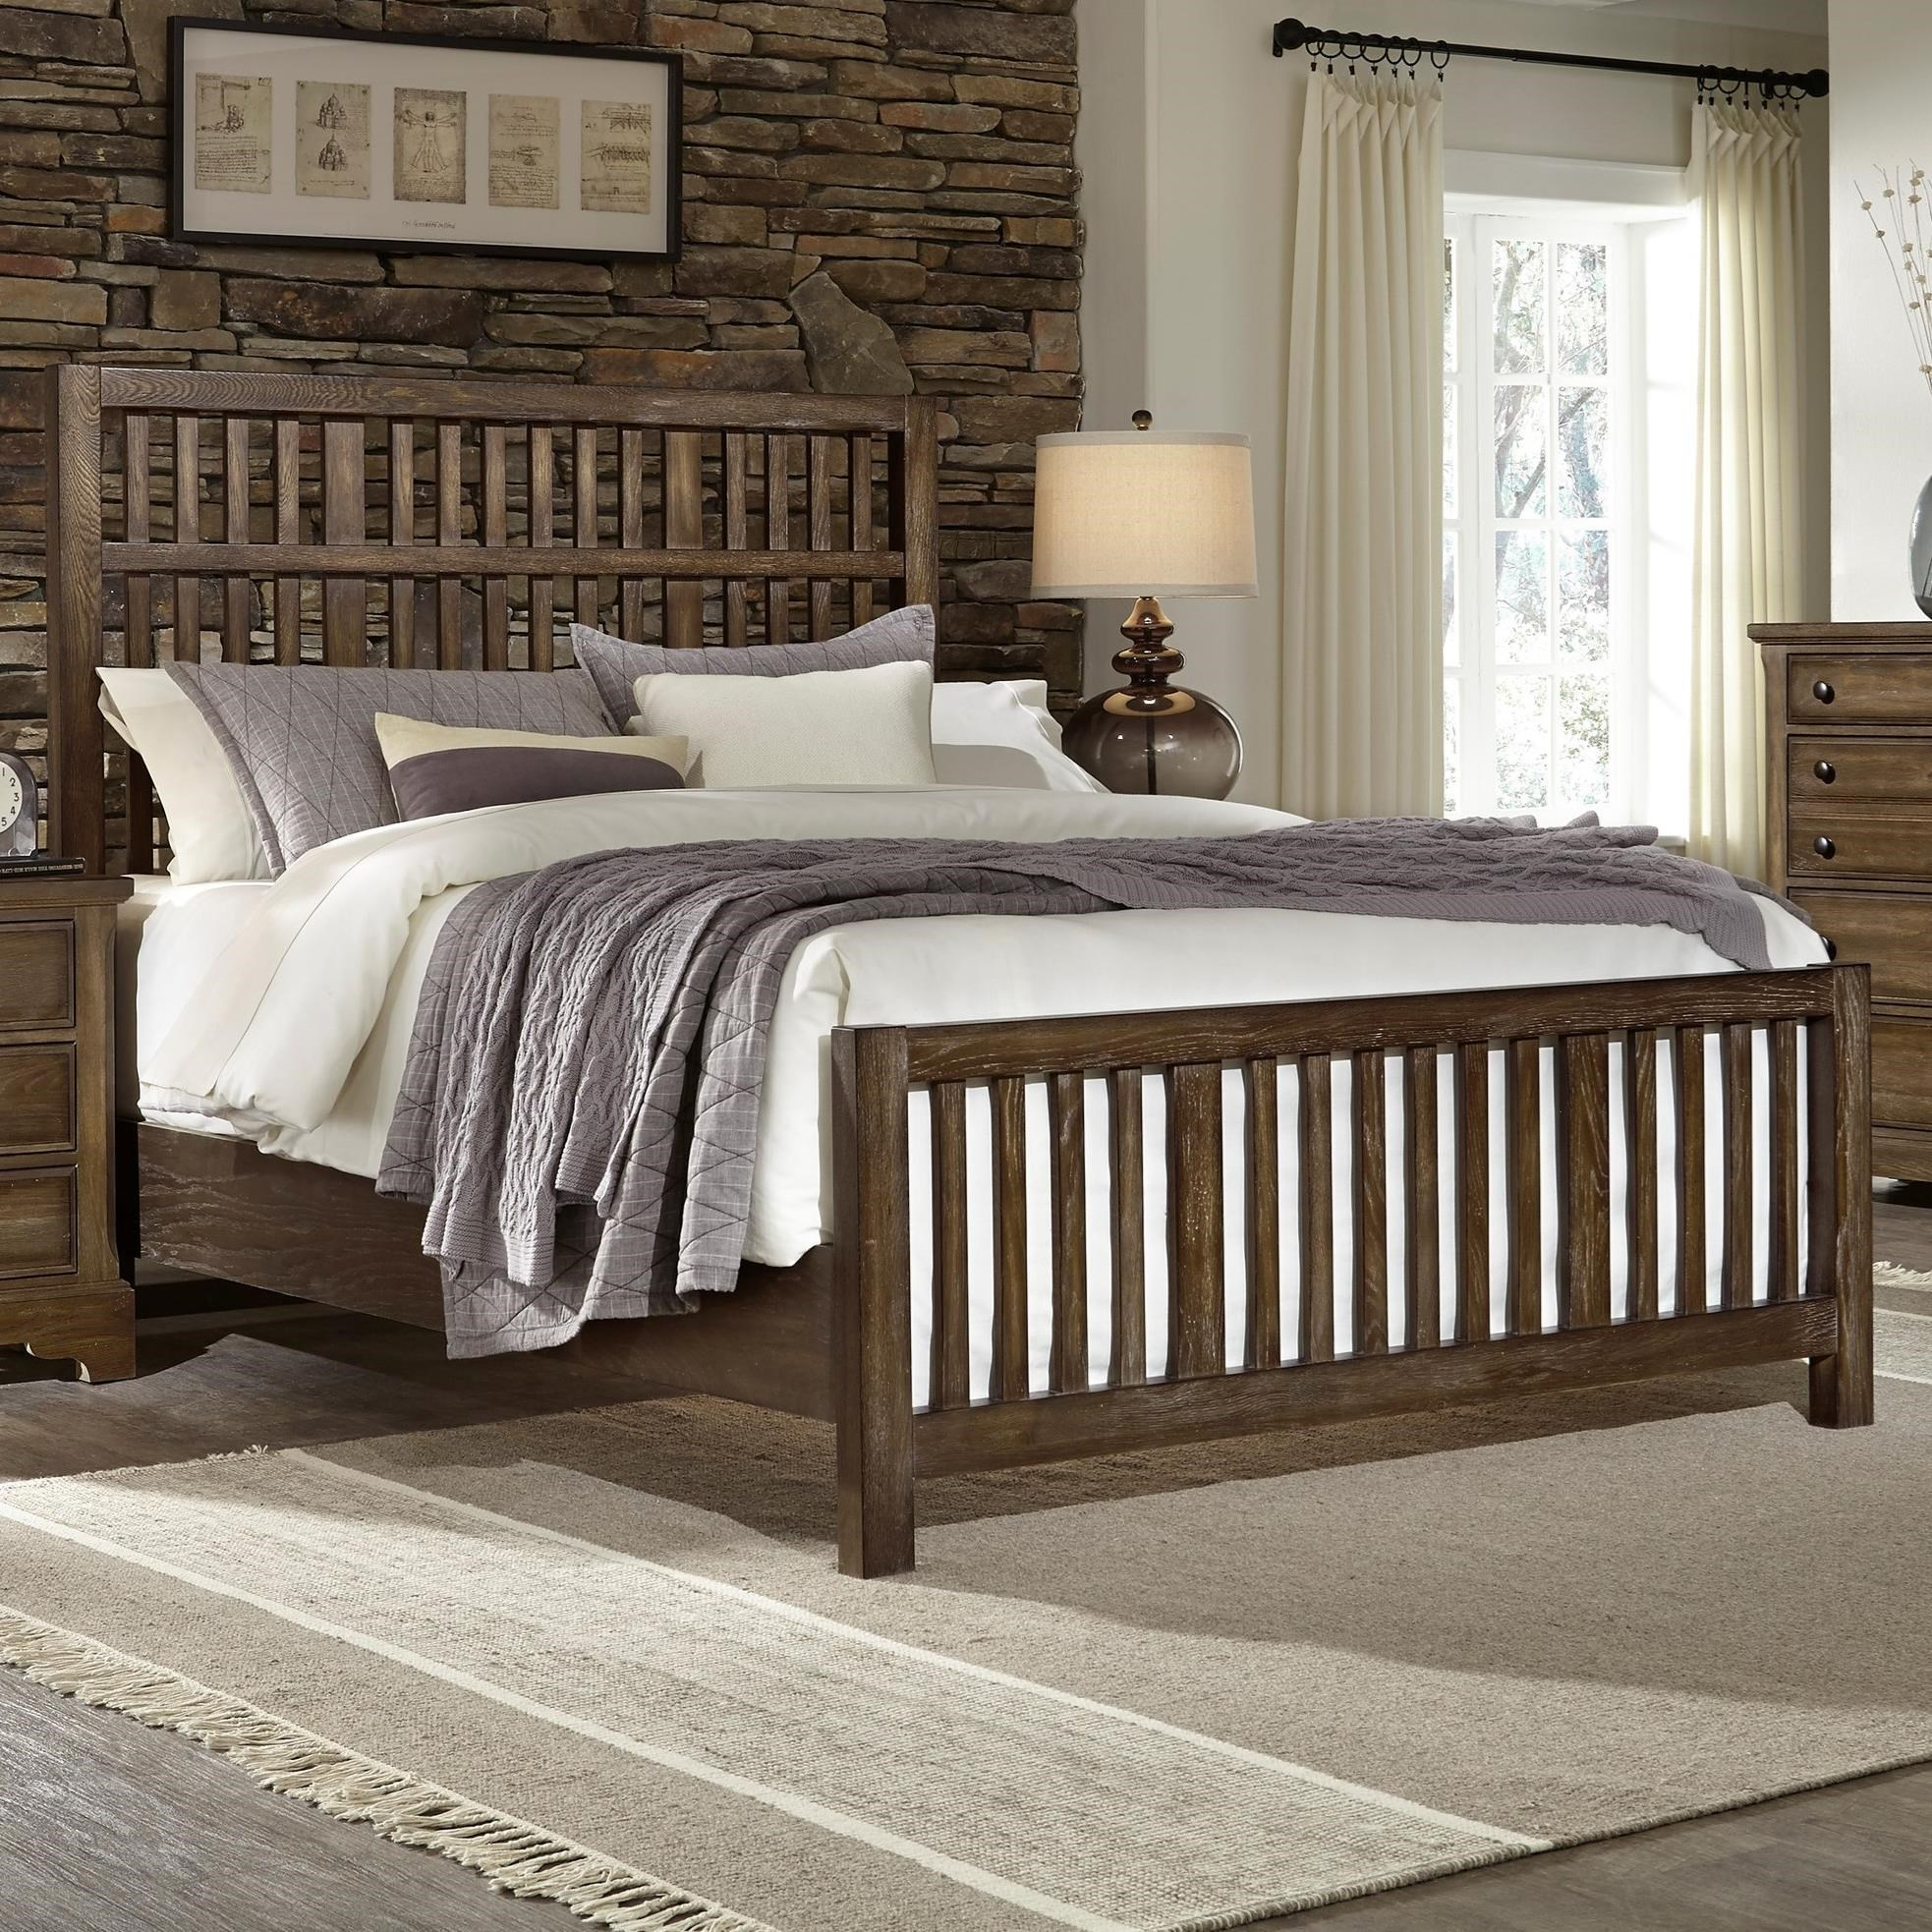 Artisan Choices King Craftsman Slat Bed by Virginia House at Virginia Furniture Market